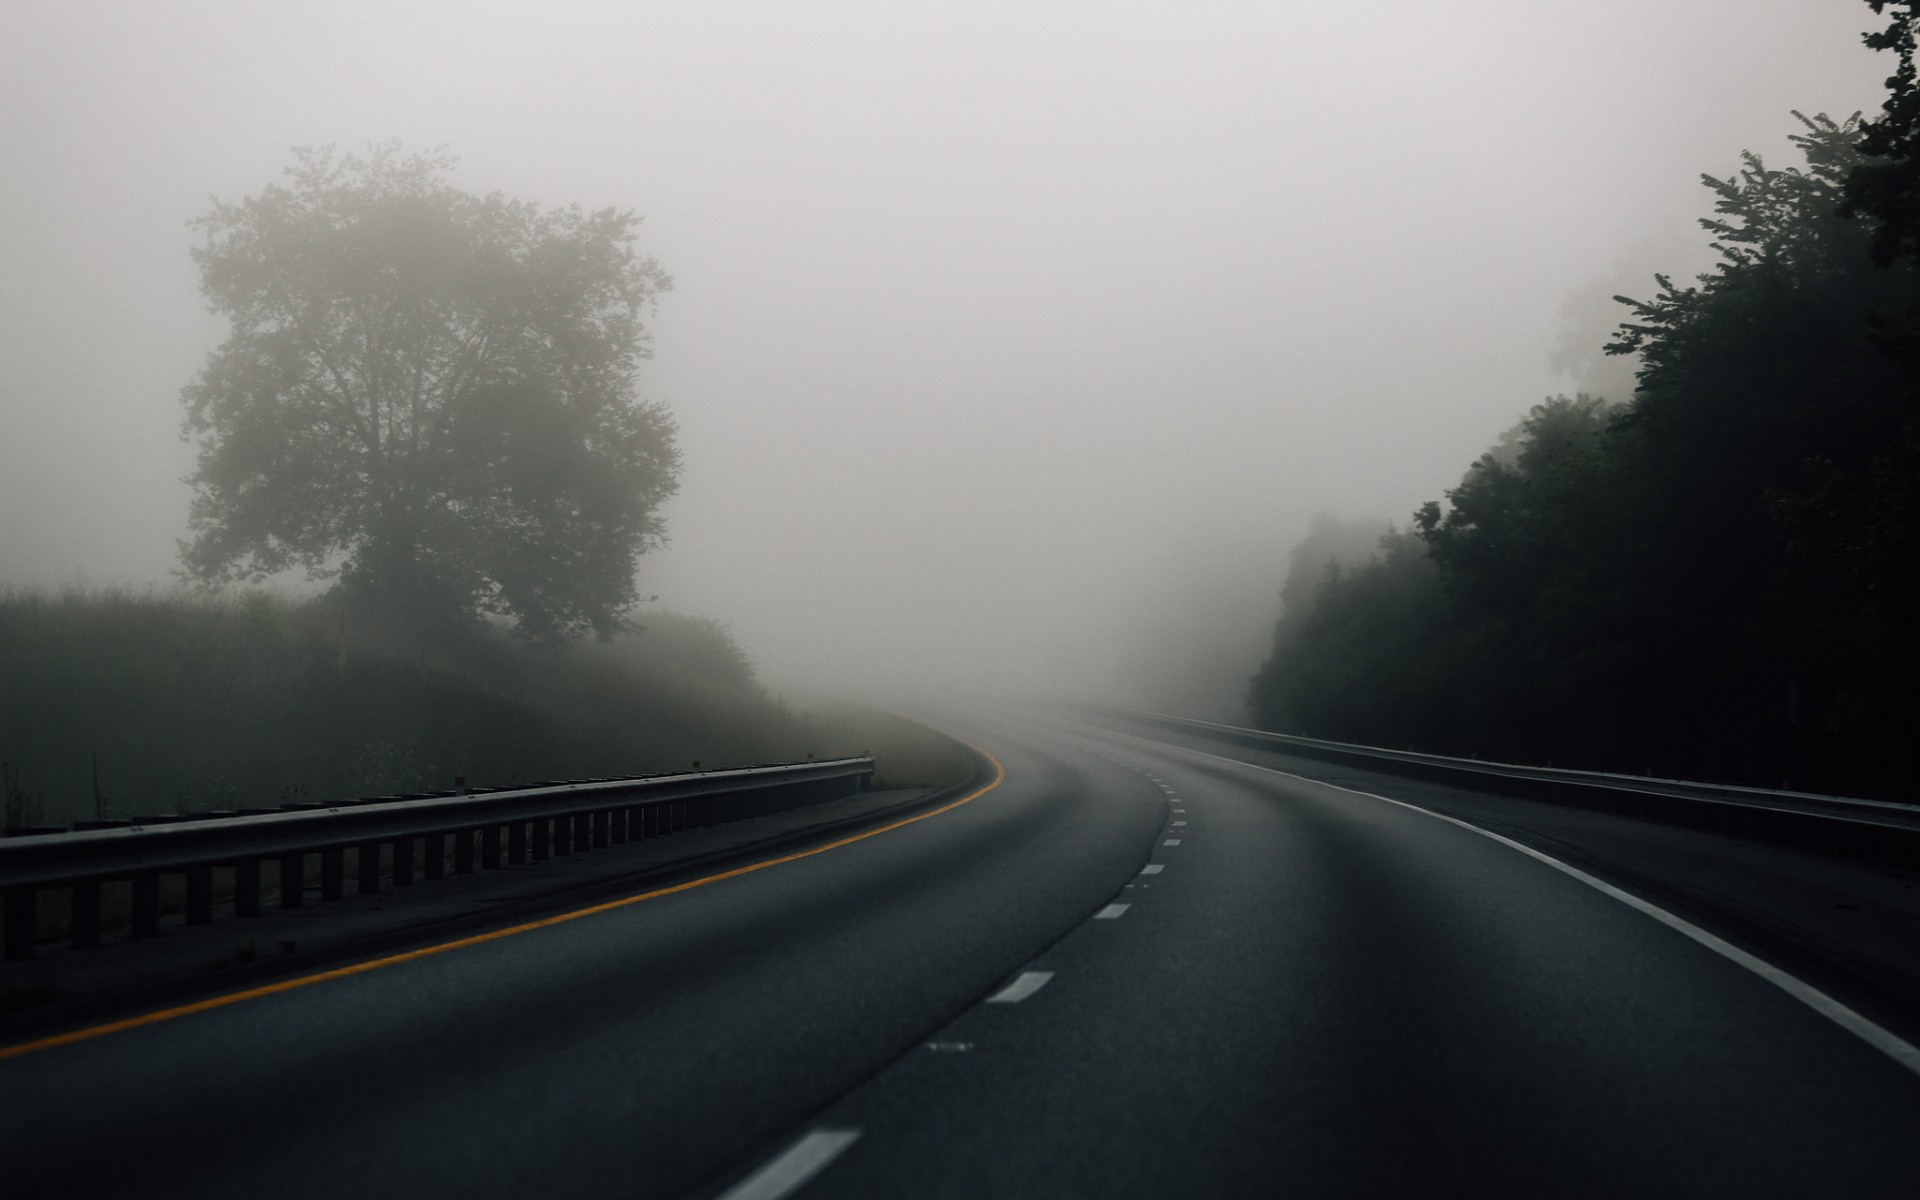 foggy road, sinister image, forest